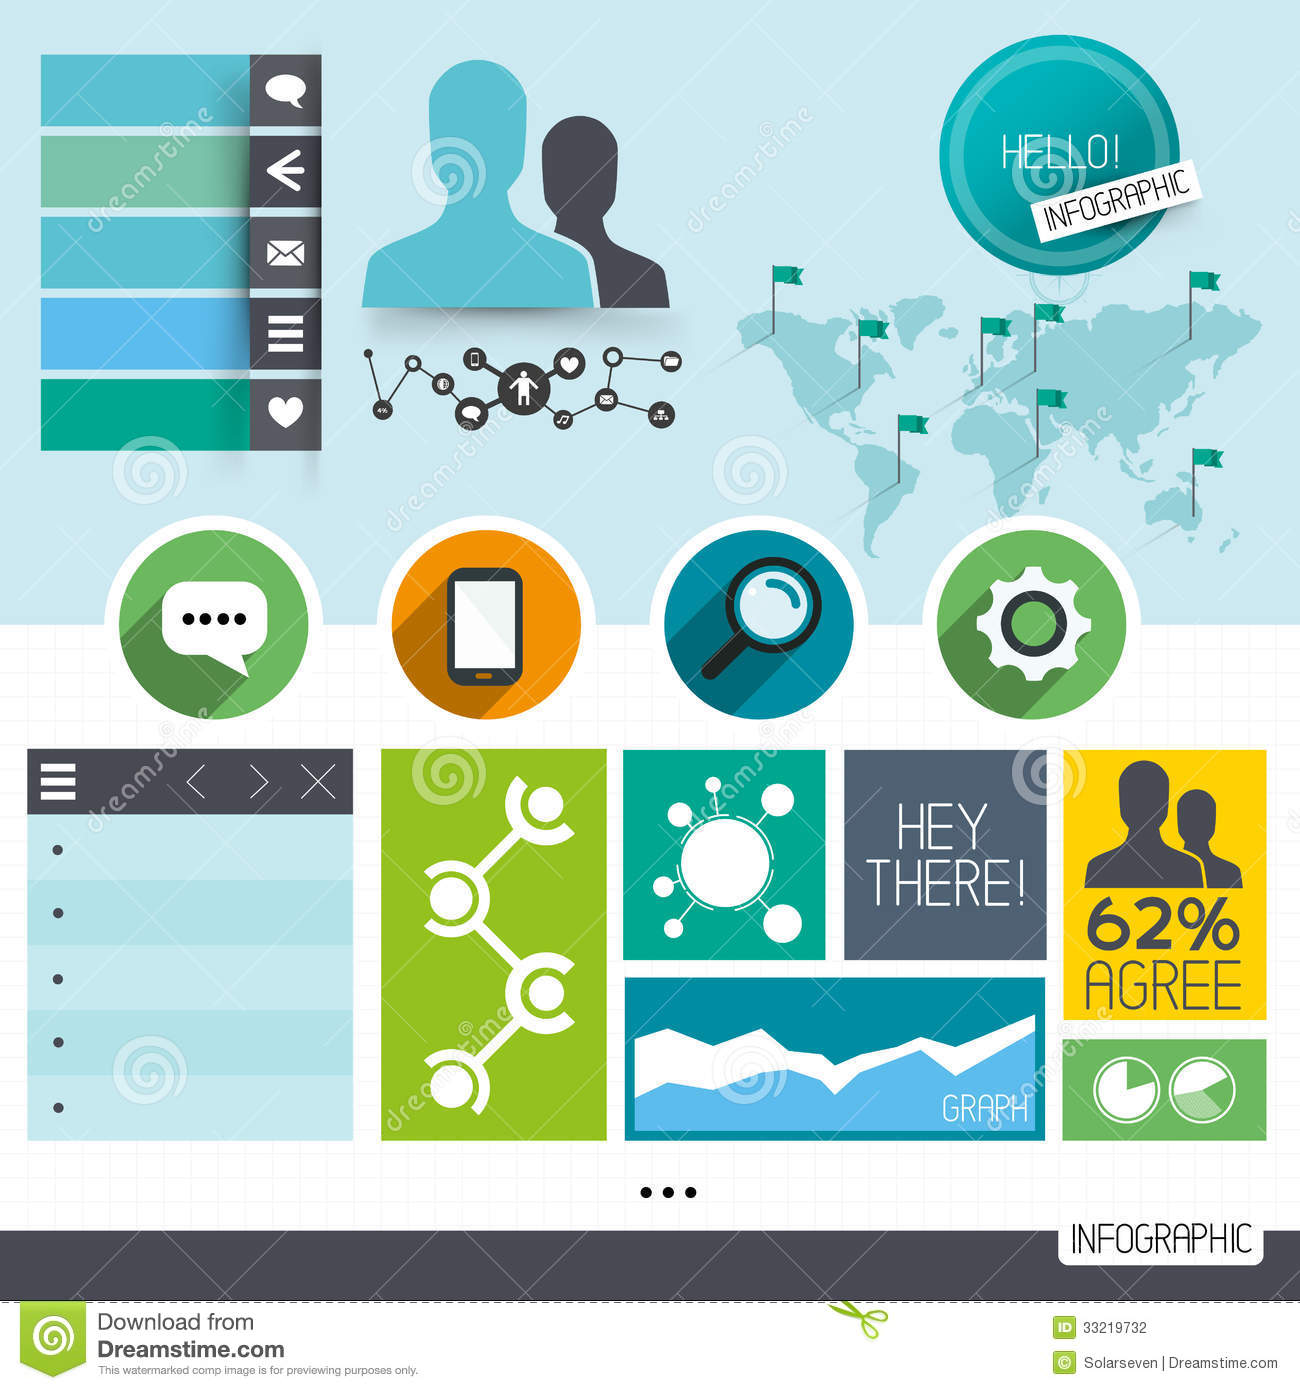 Infographic Vector Elements Stock Photography - Image: 33219732